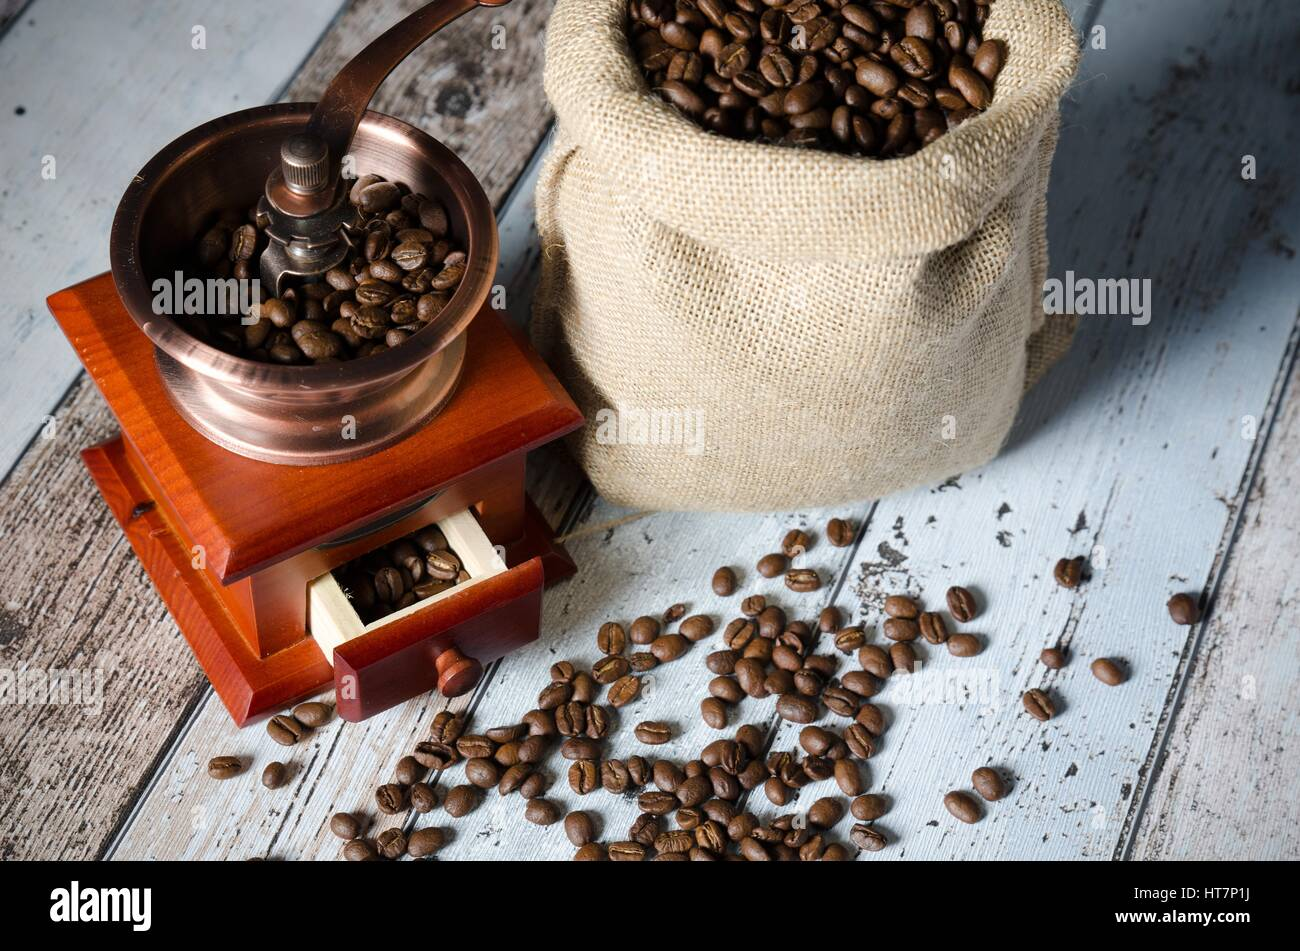 Coffee grinder with roasted beans. Vintage mill composition Stock Photo